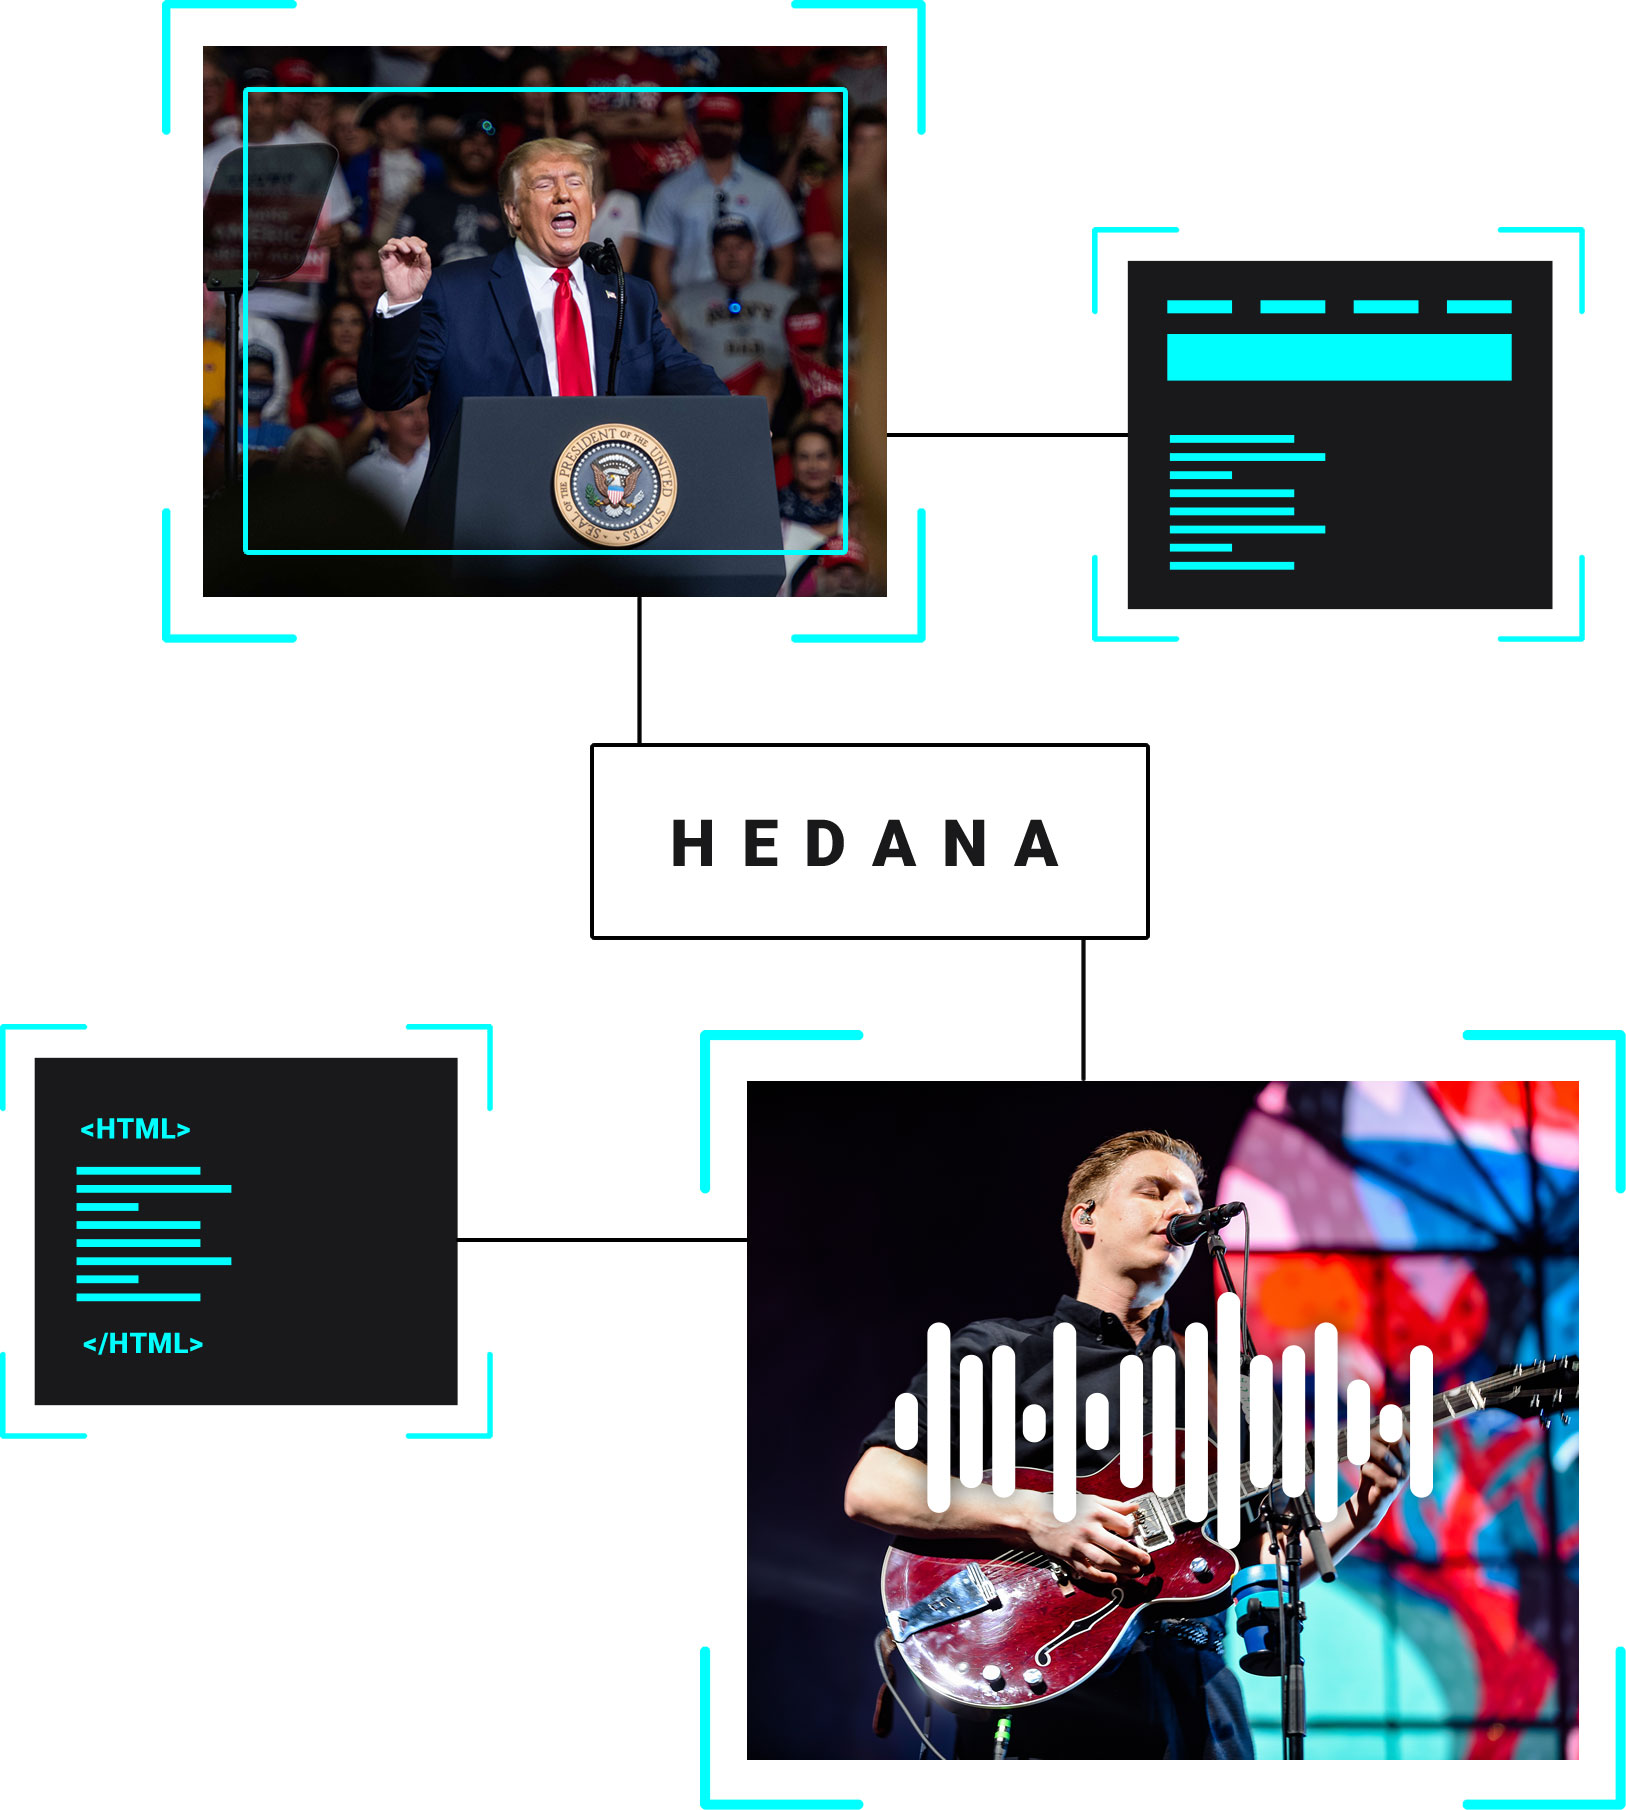 Hedana goes beyond known search engine indexes to seek out hidden uses of content, such as torrent sites